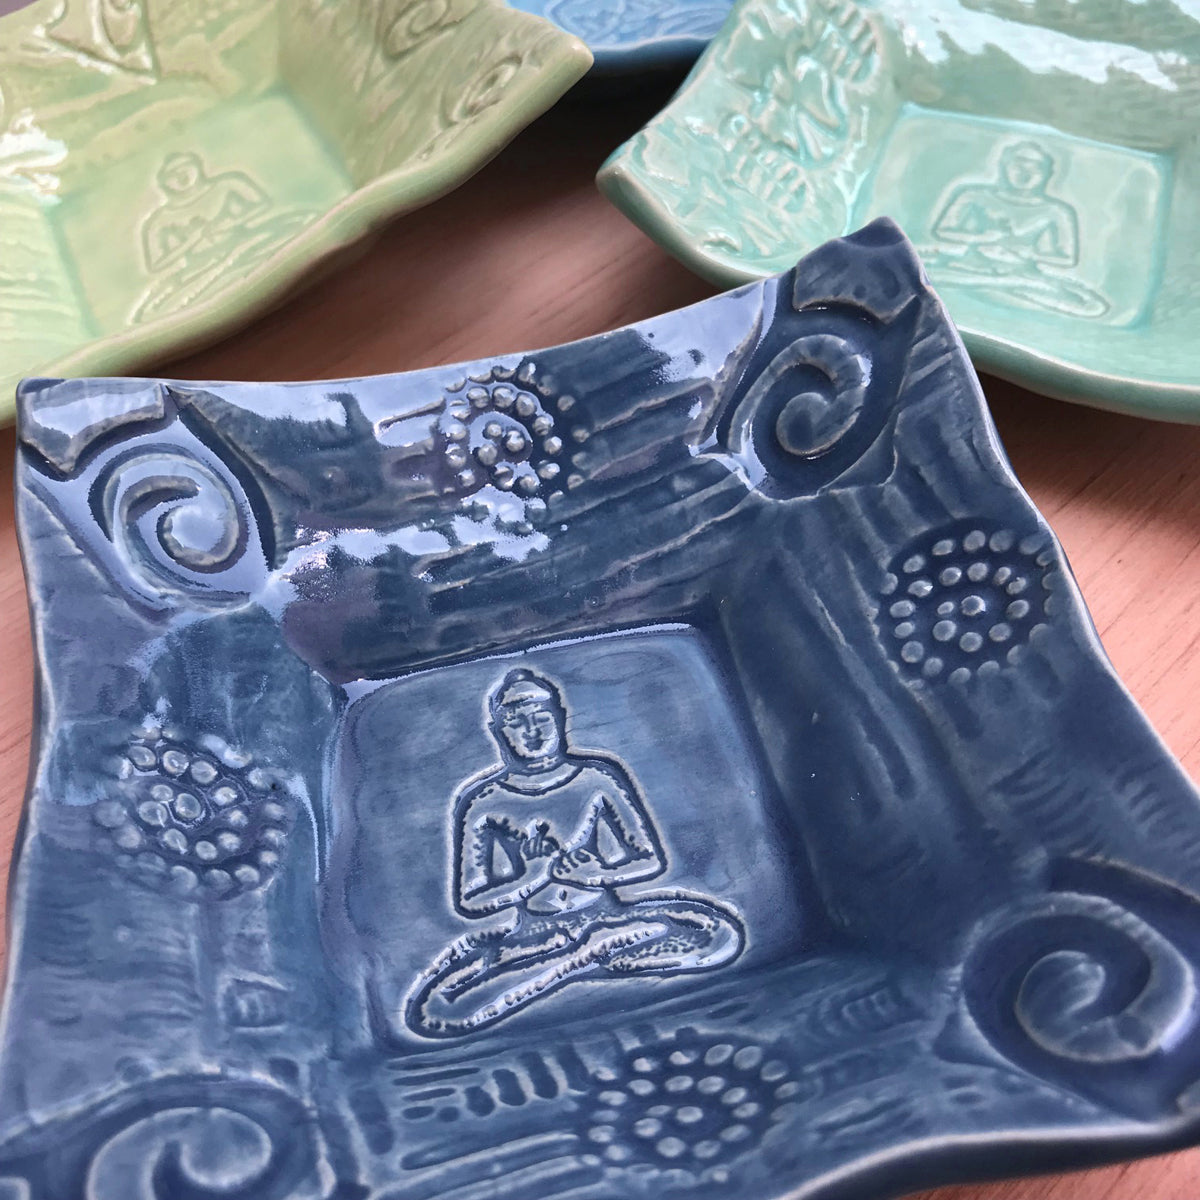 Handmade Buddha image on Oerth Studio dish.